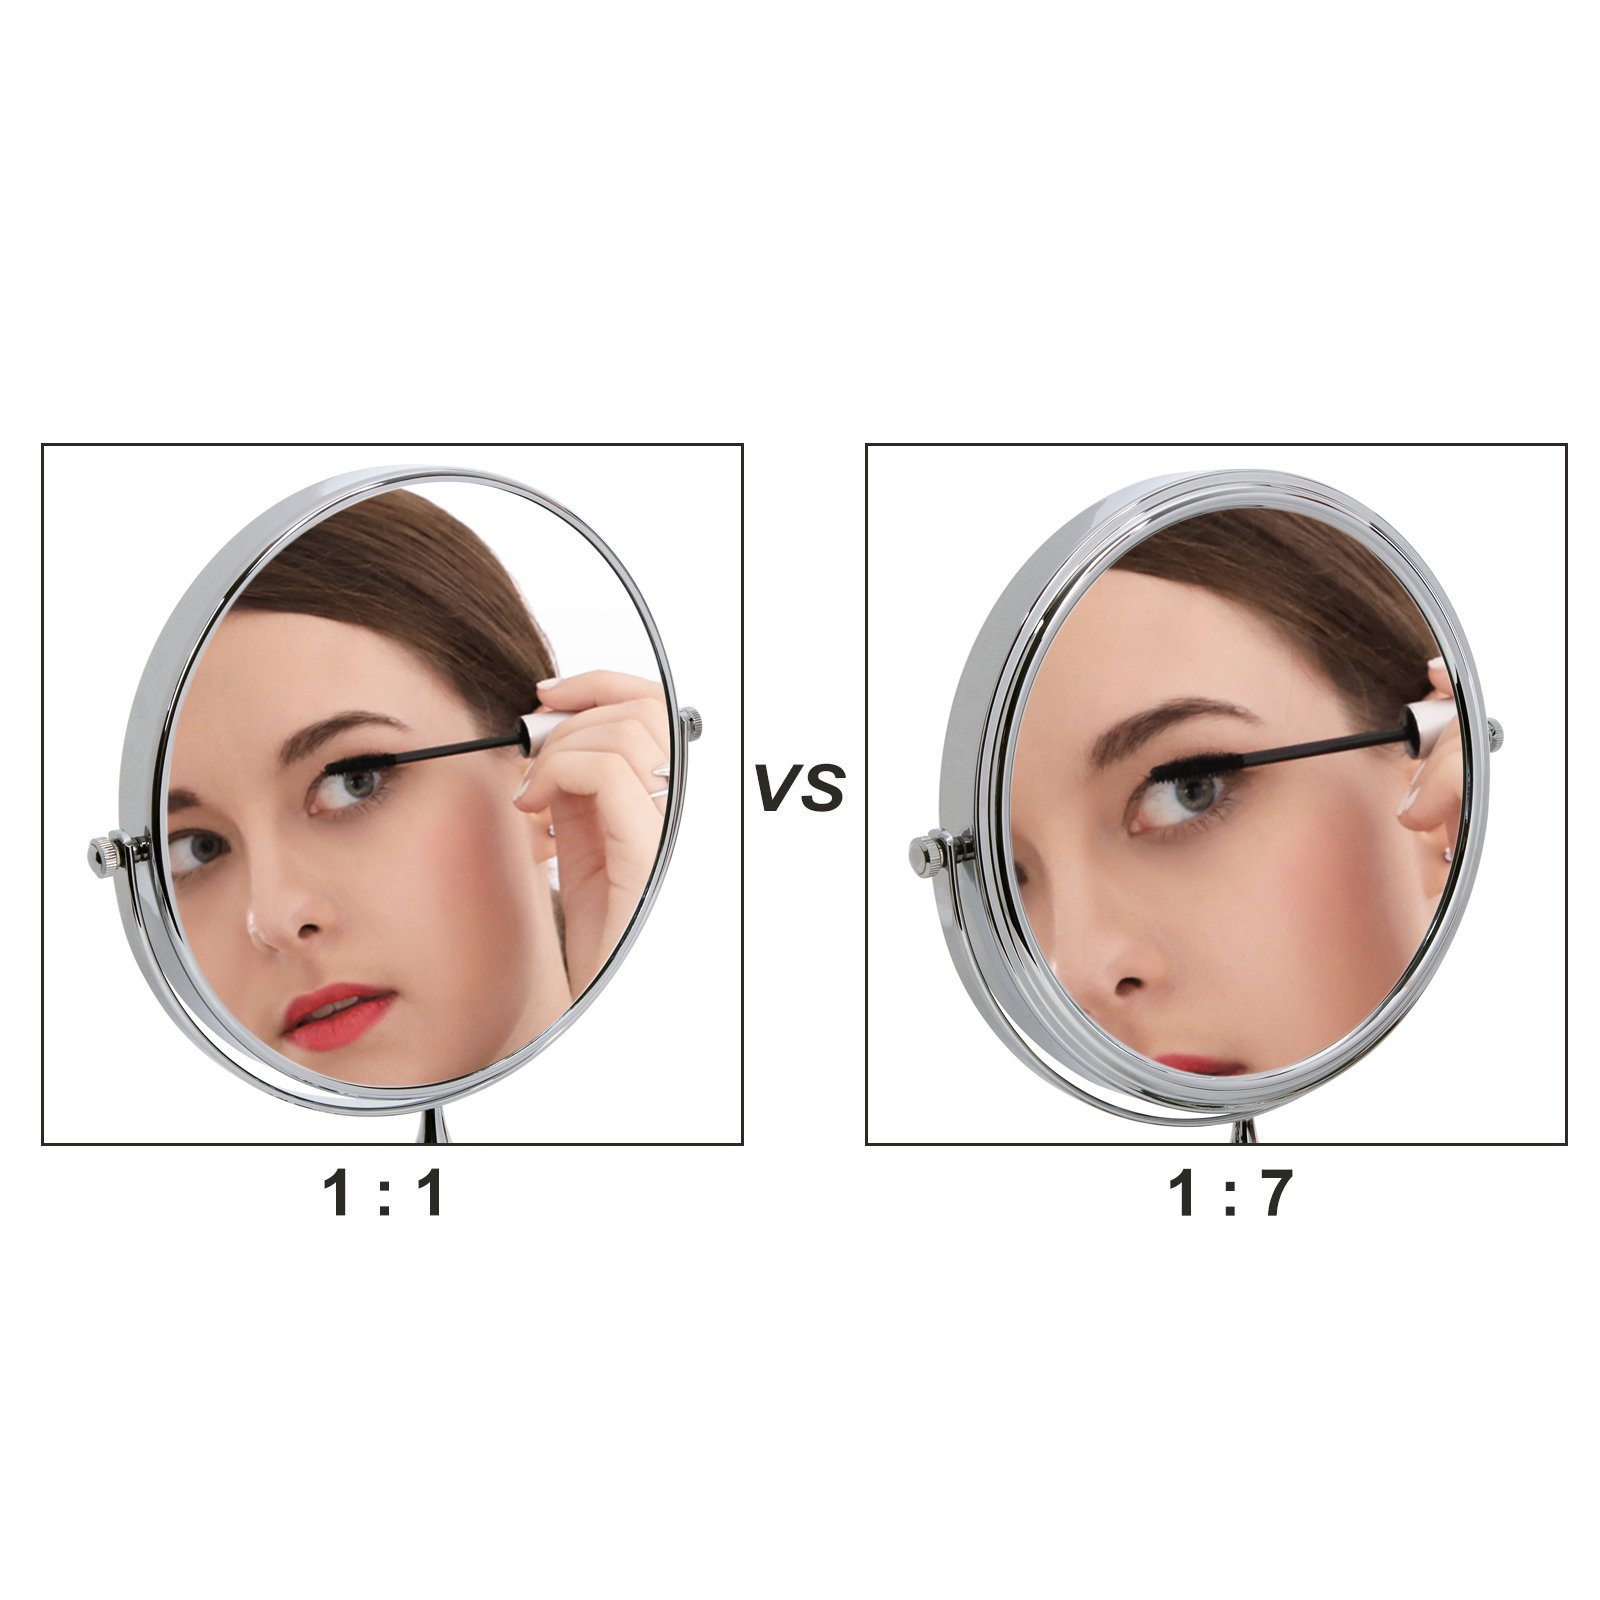 SONGMICS 8'' Two-Sided Wall Mount Makeup Mirror 360° Swivel Extendable 7x Cosmetic Mirror UBBM713 by SONGMICS (Image #3)